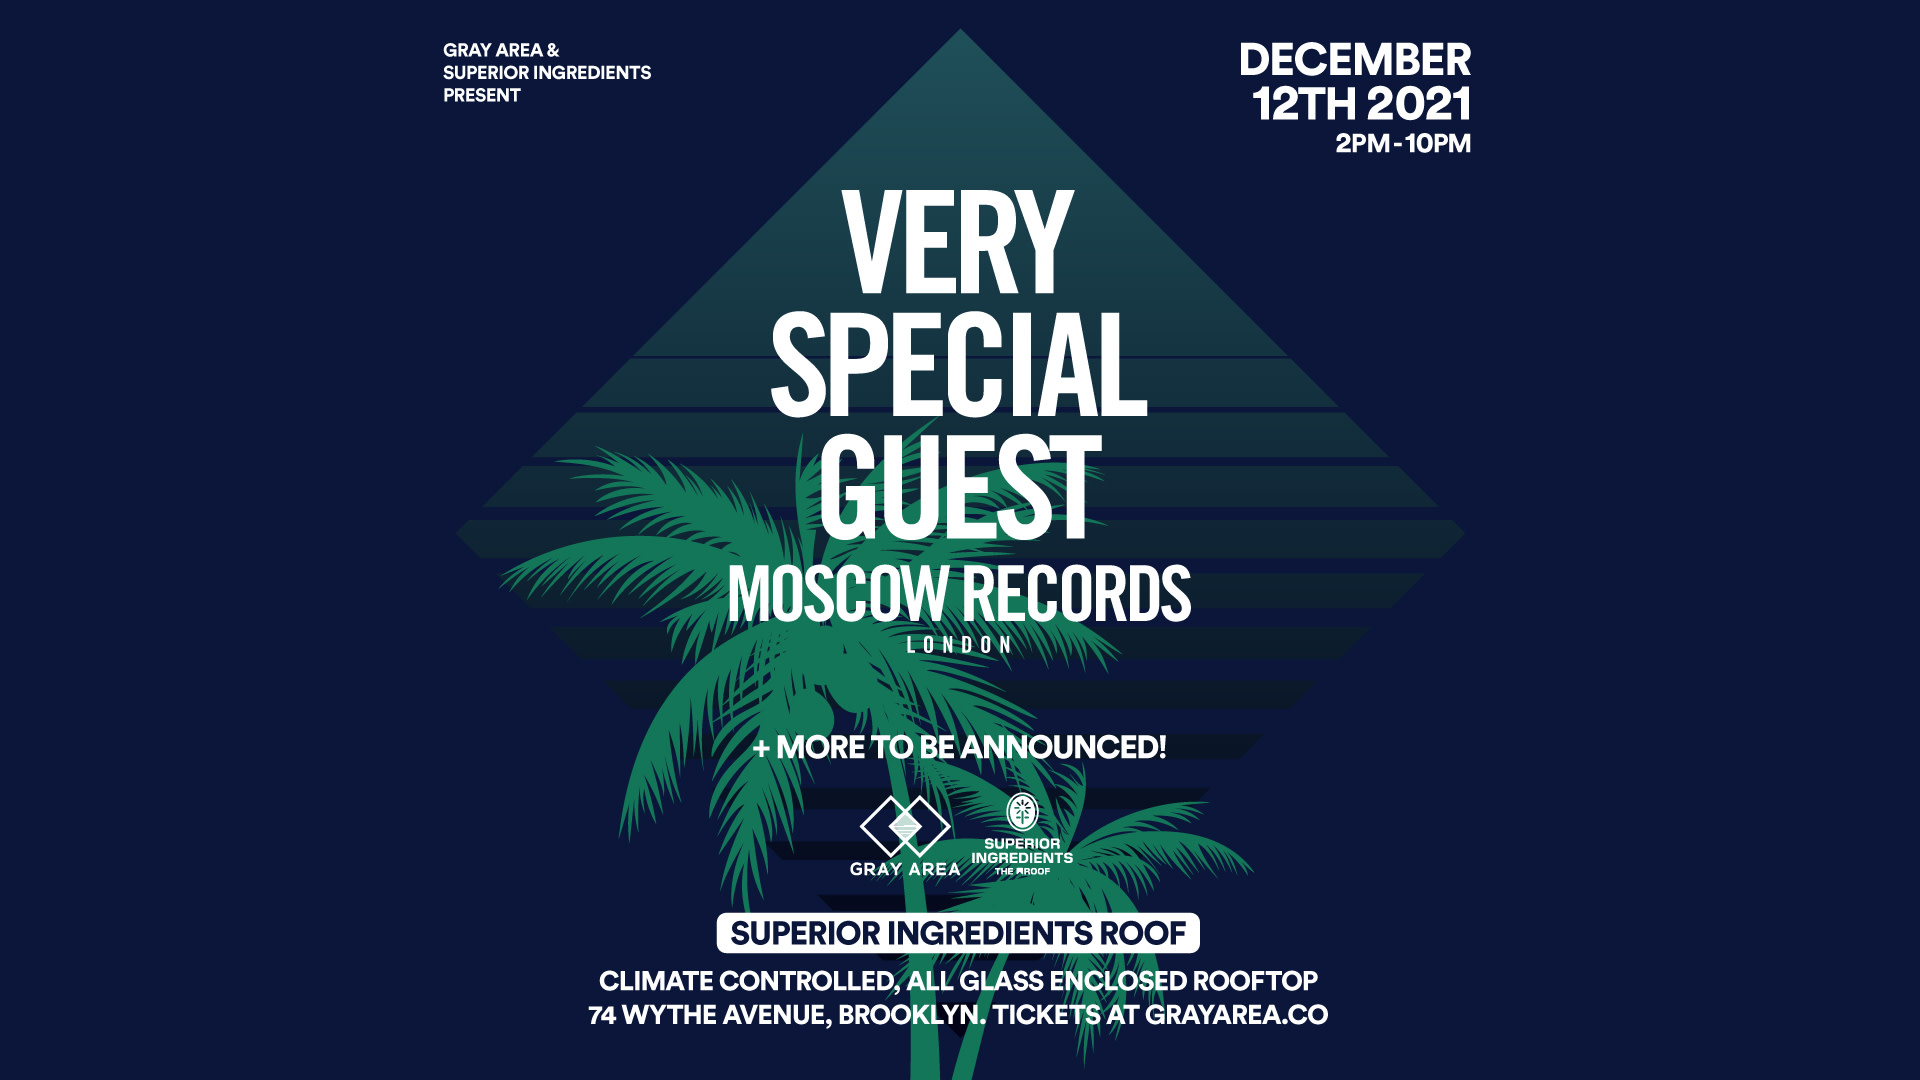 Very Special Guest (Moscow Records)